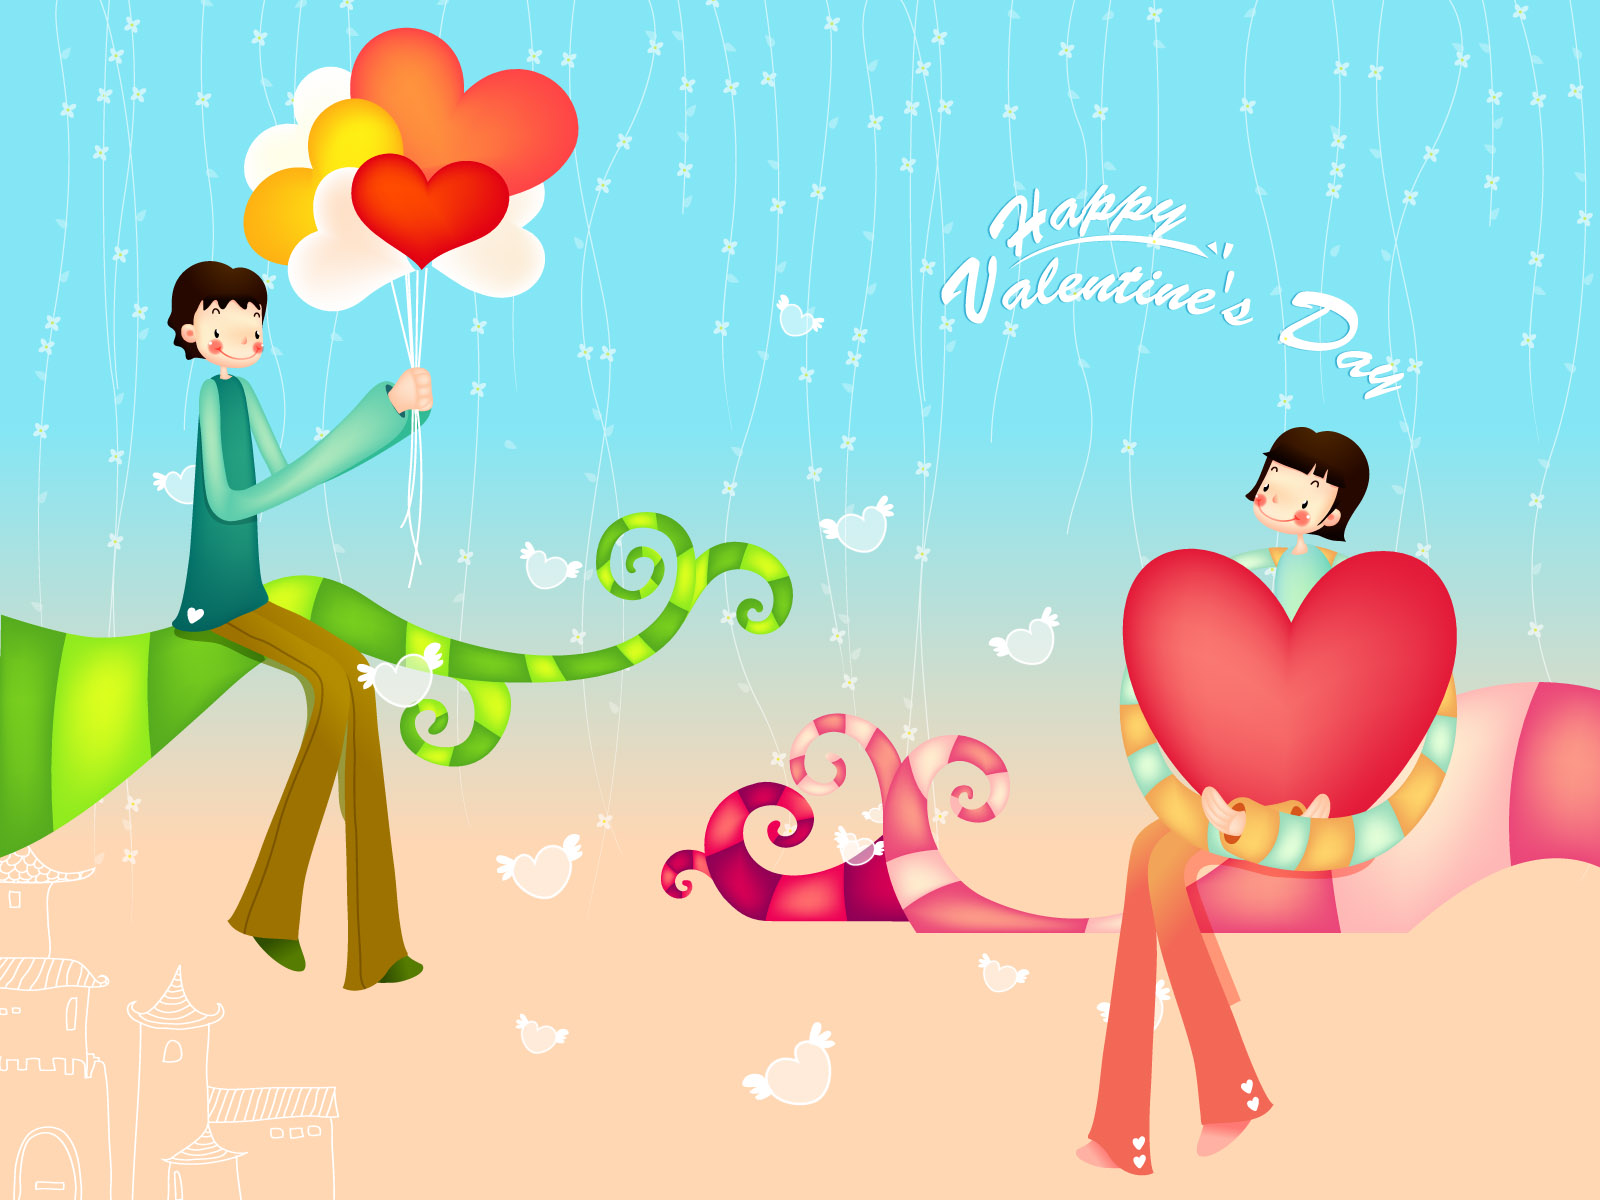 Romantic Valentine's Day illustration class 11993